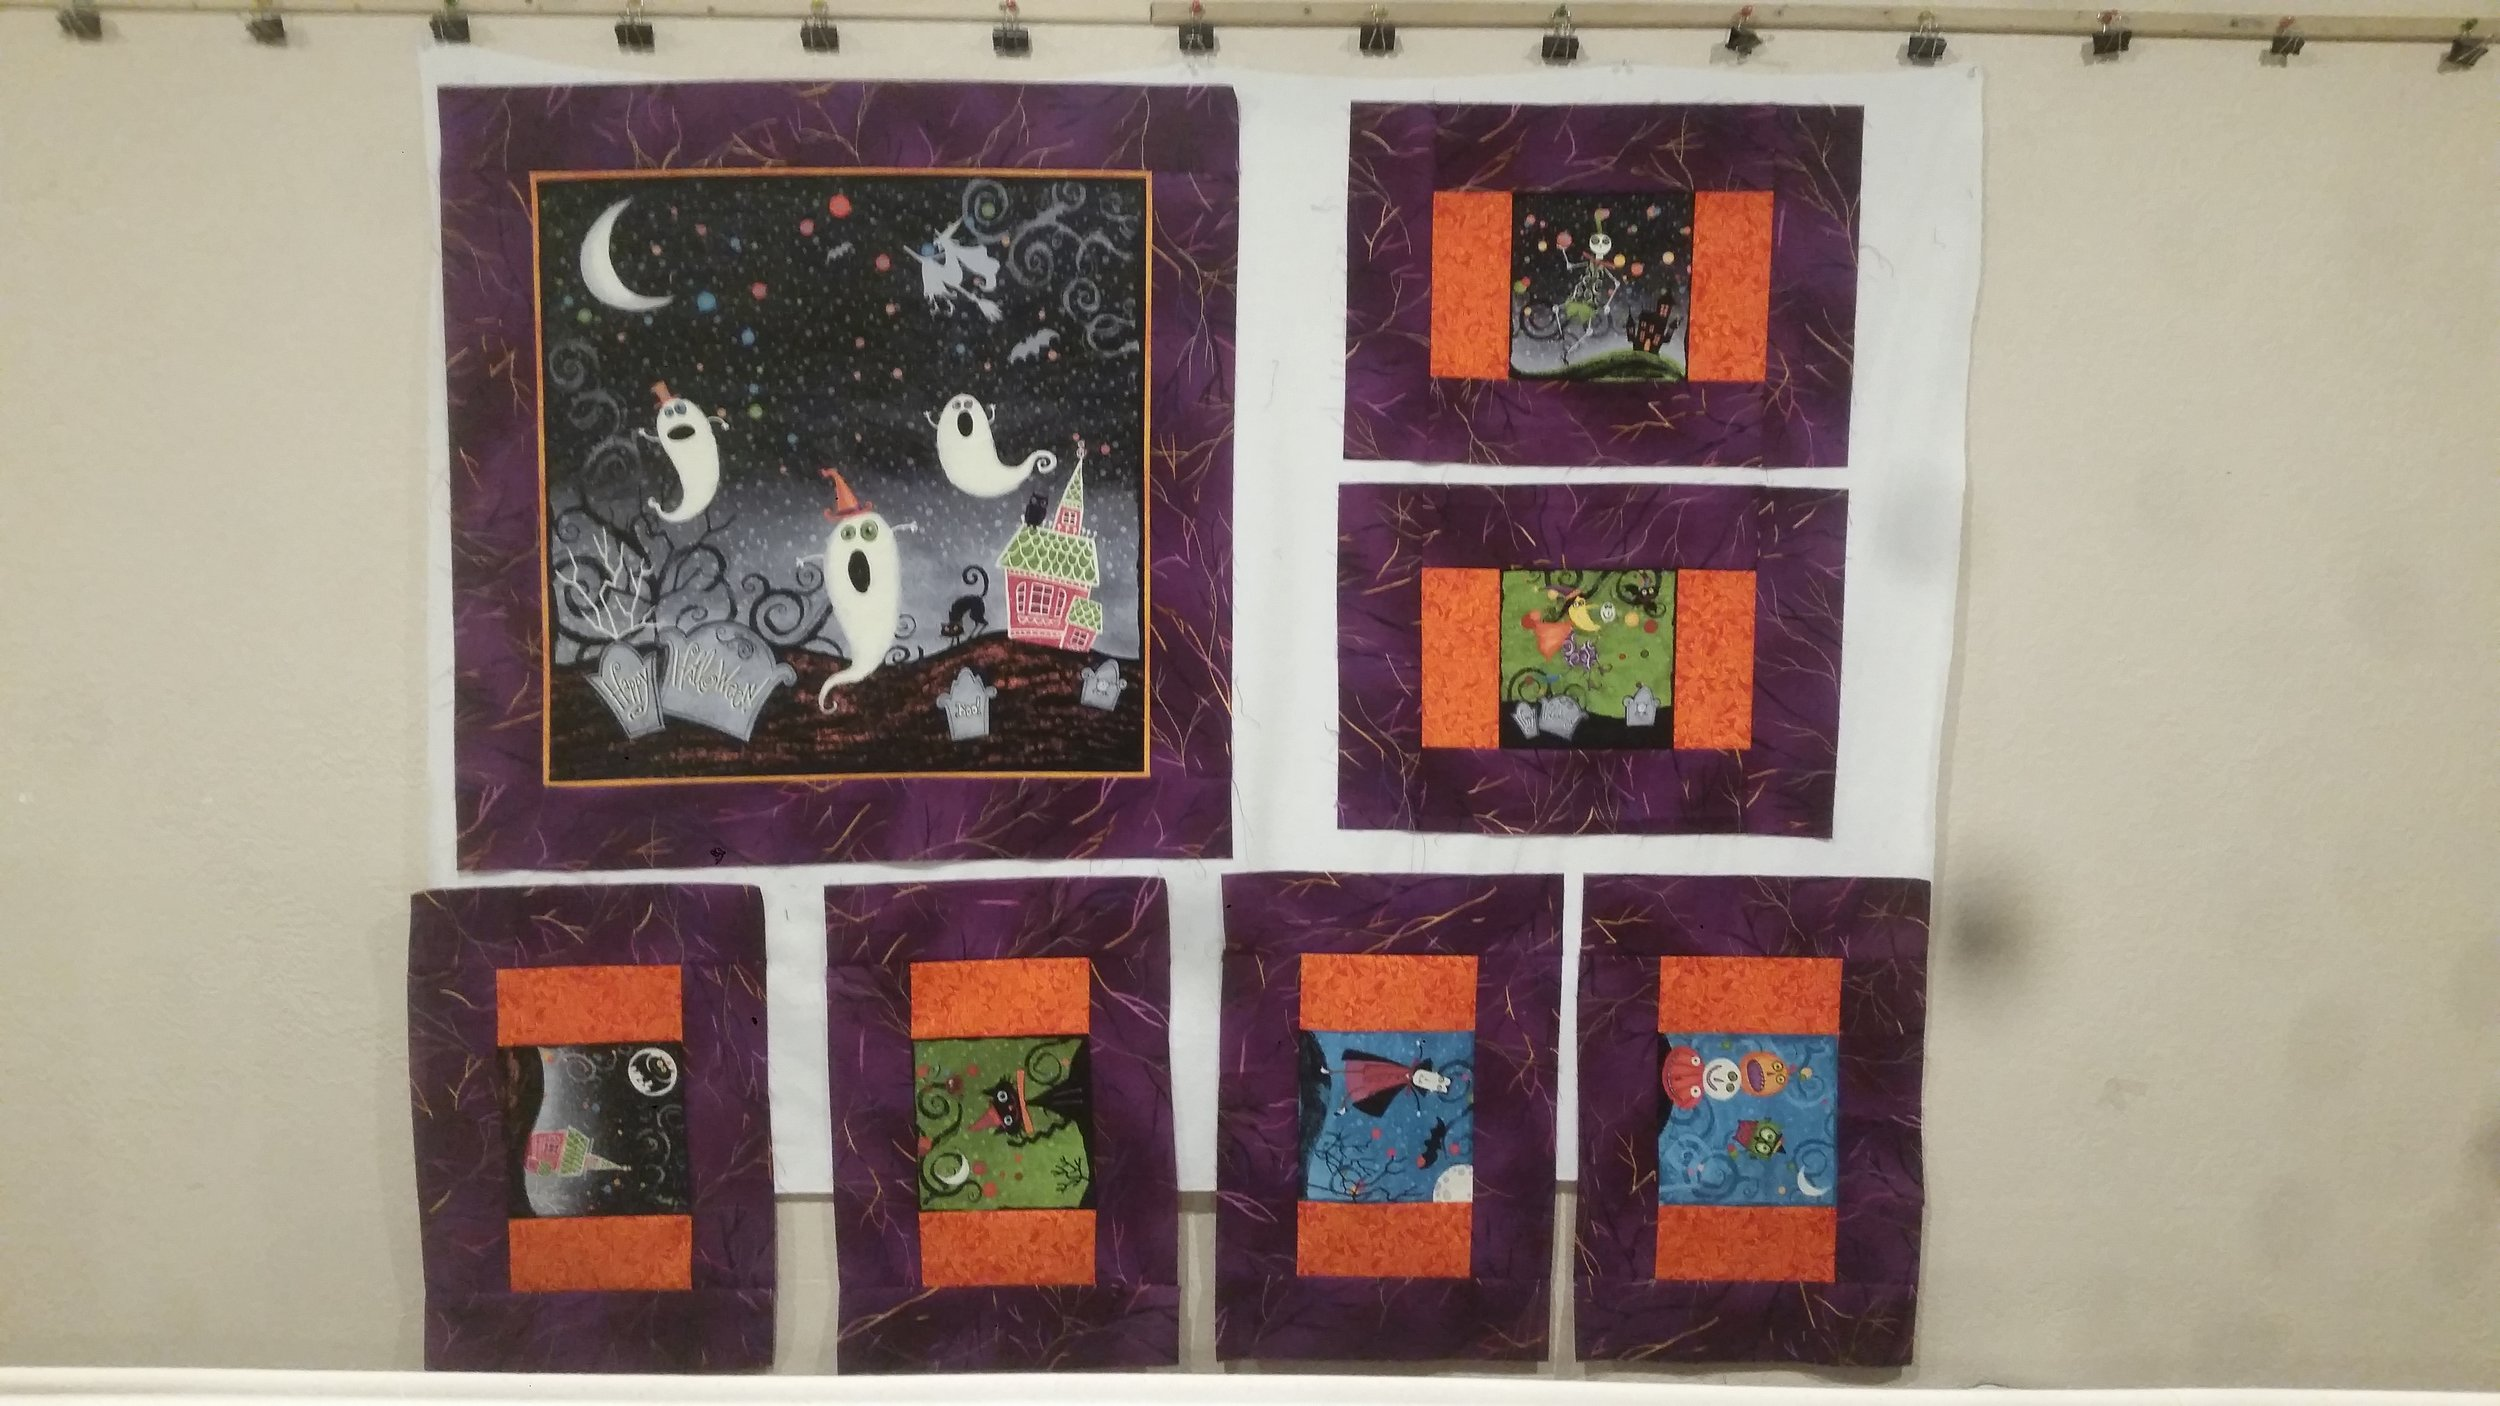 A Halloween wall hanging and place mats.